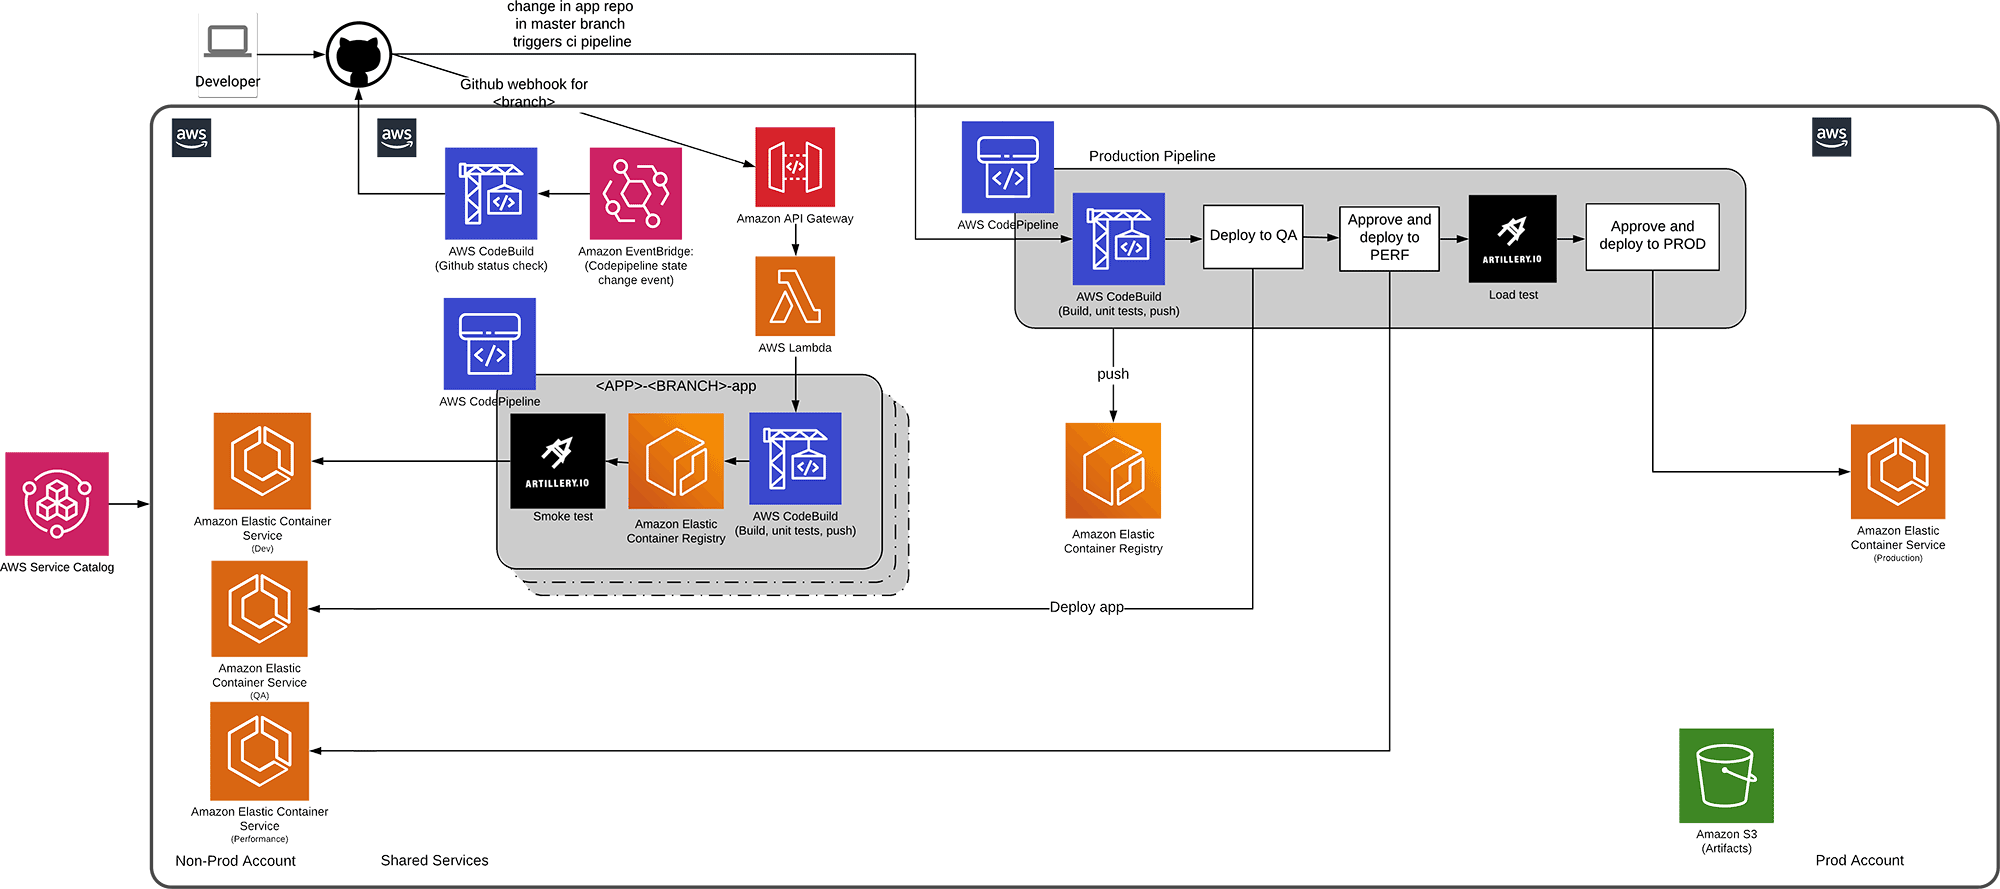 NTT DATA Architecture Diagram